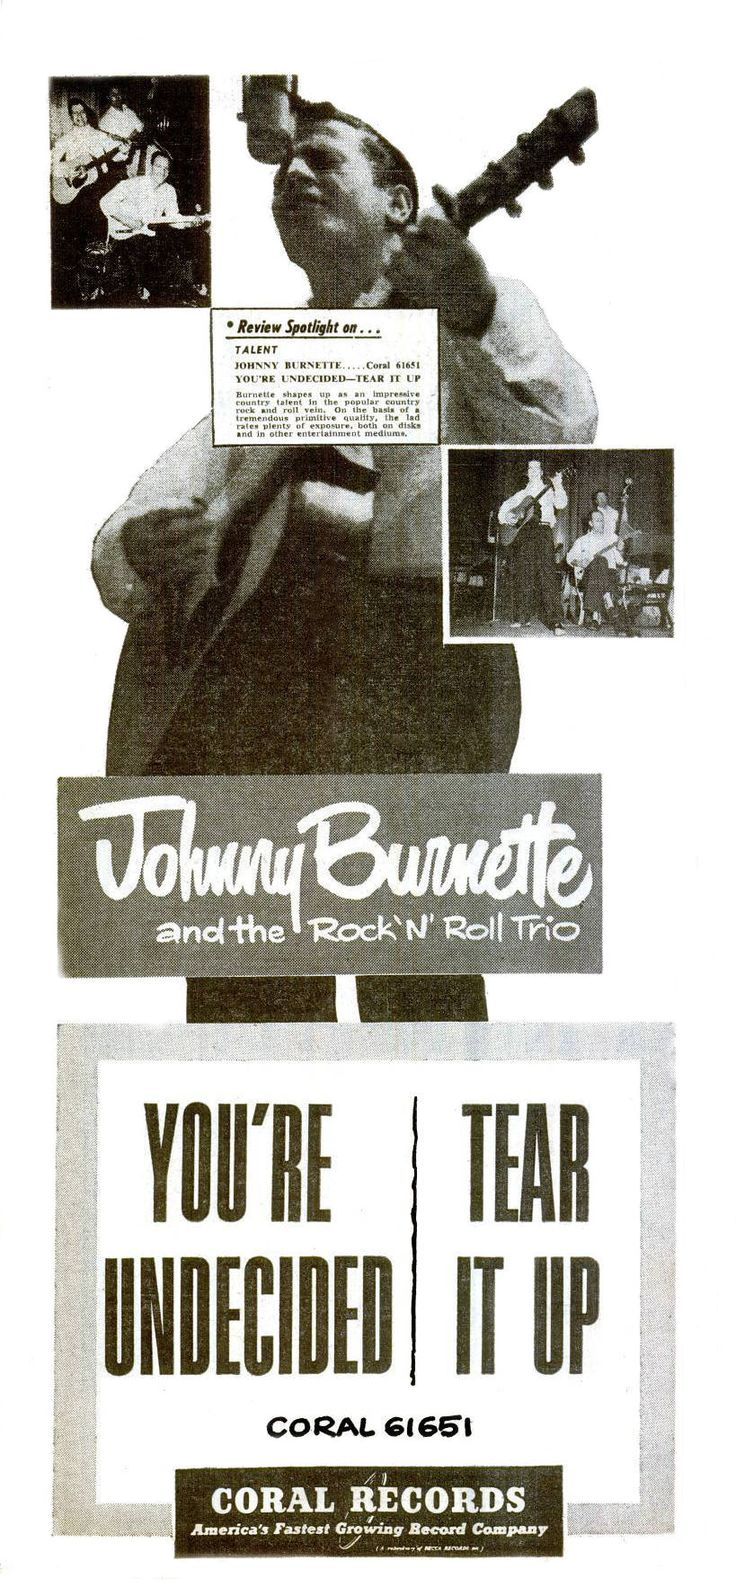 Johnny Burnette trio Ad for their first Coral Record - I was friends with Paul Burlison and spoke with Dorsey several times by telephone.